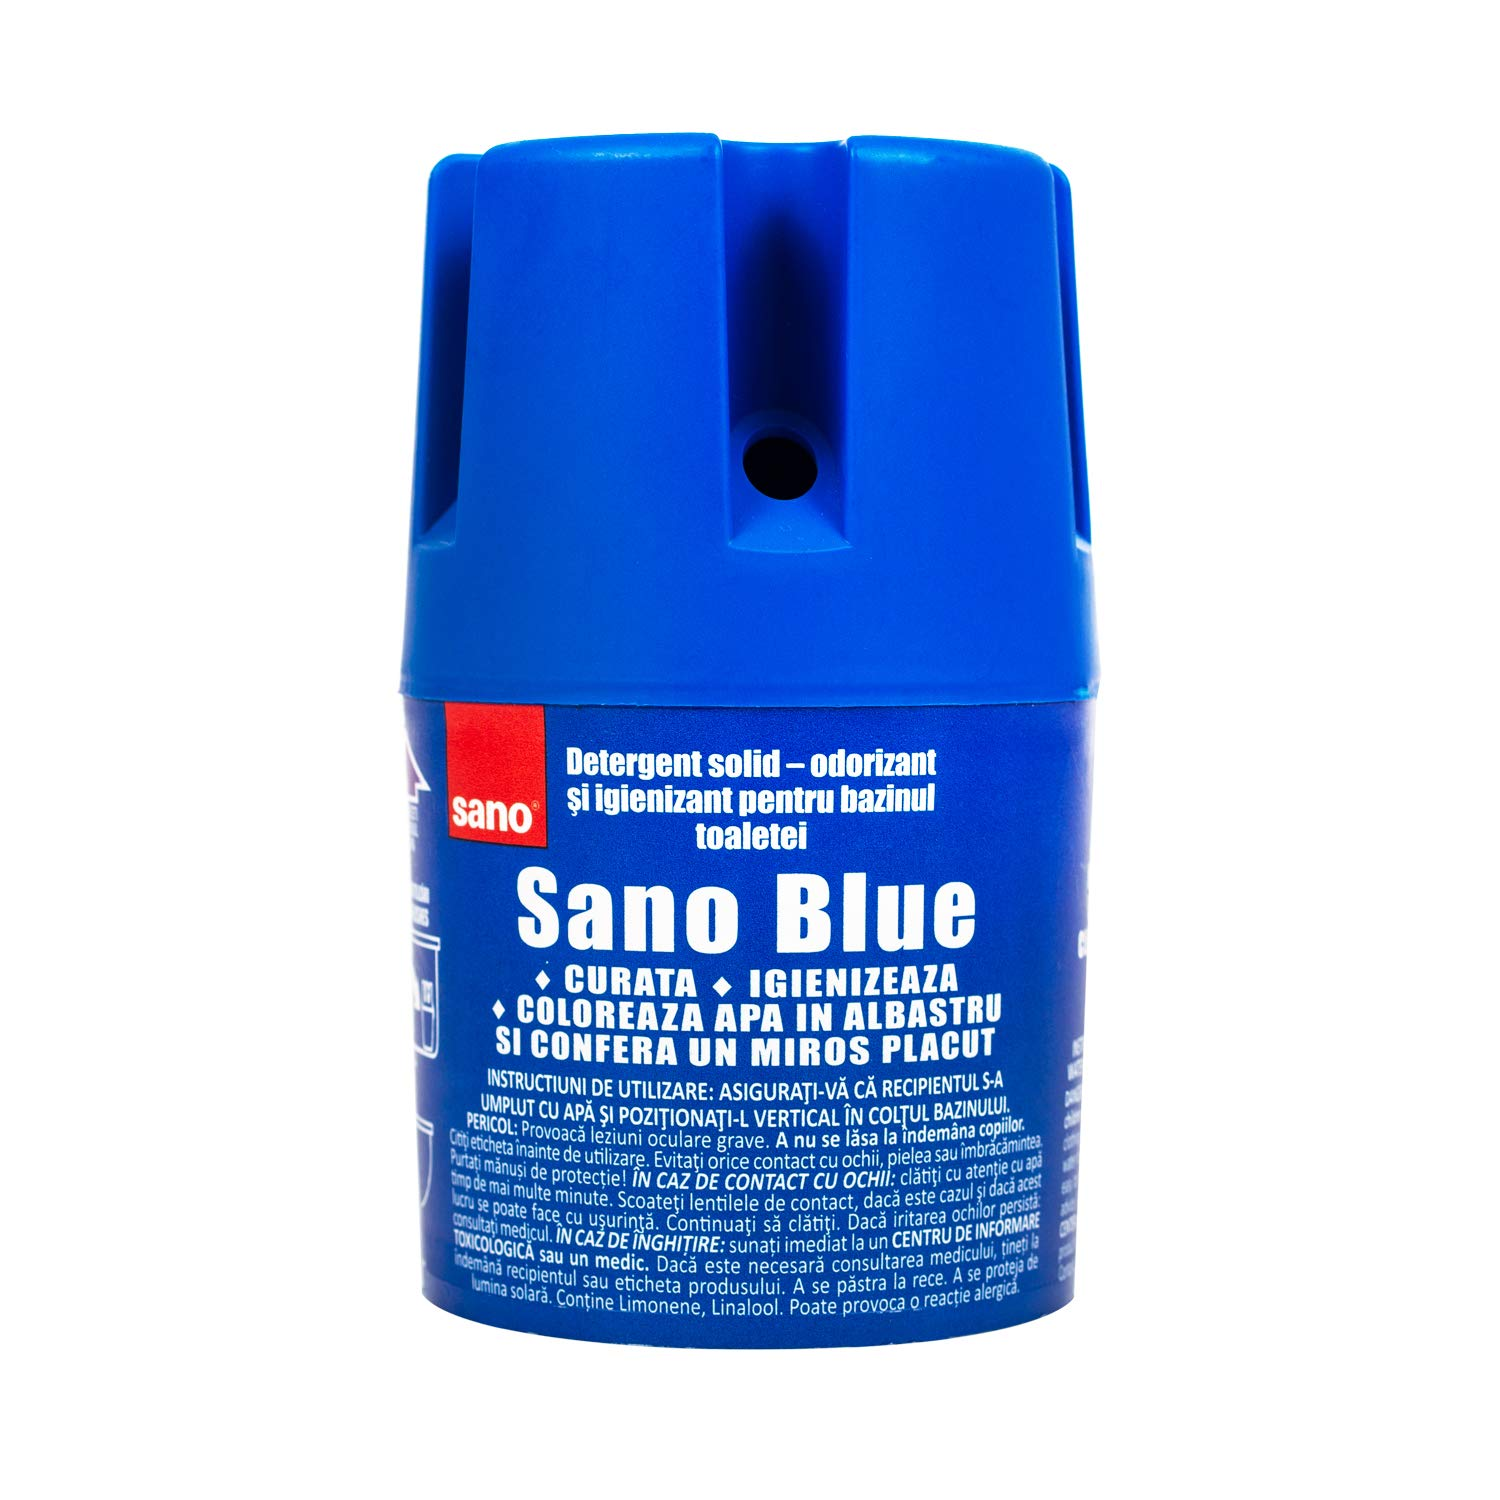 Sano Blue Water Toilet Bowl Cleaner Long Lasting Air Freshener WC Tablet Pack of 4